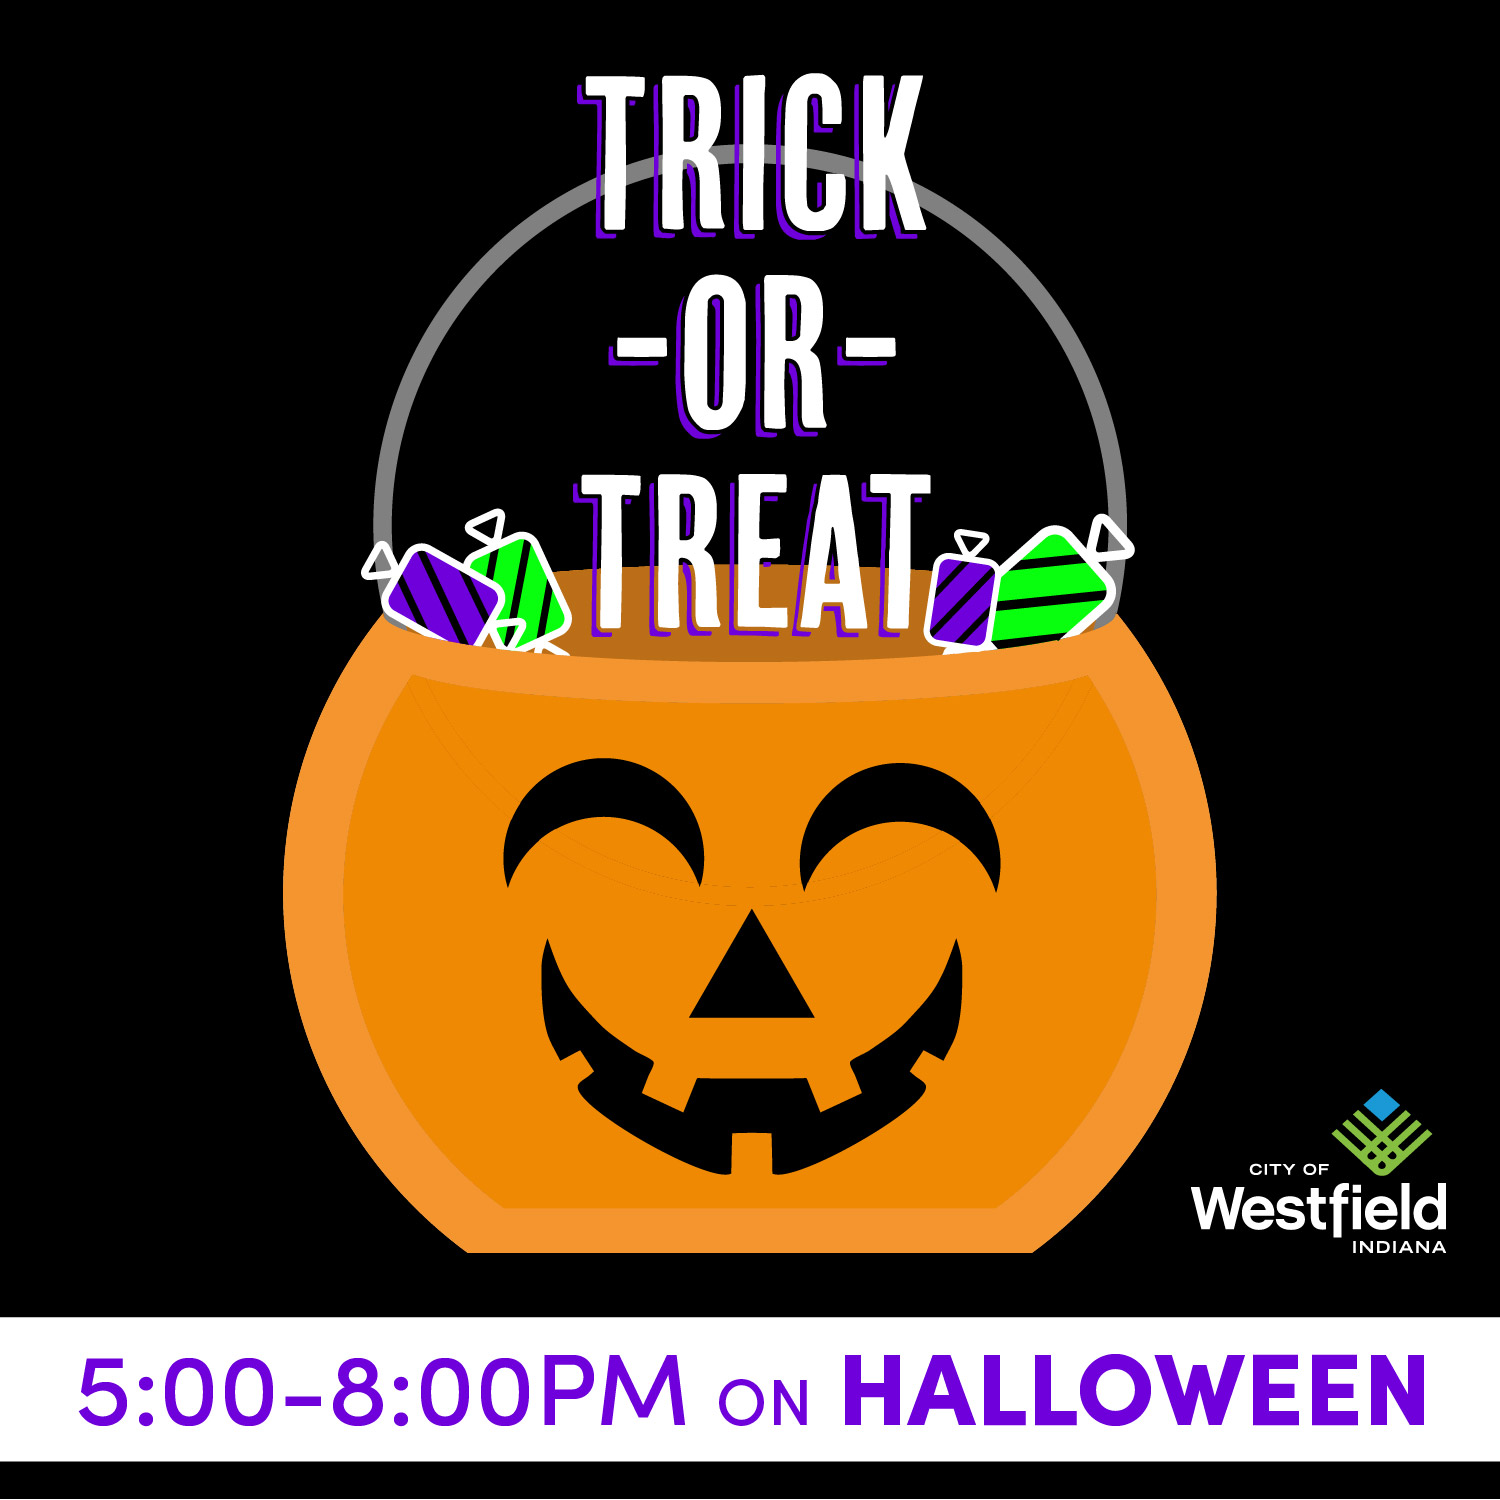 Photo for: NEWS RELEASE: City of Westfield Provides Halloween Guidance and Alternative Activities